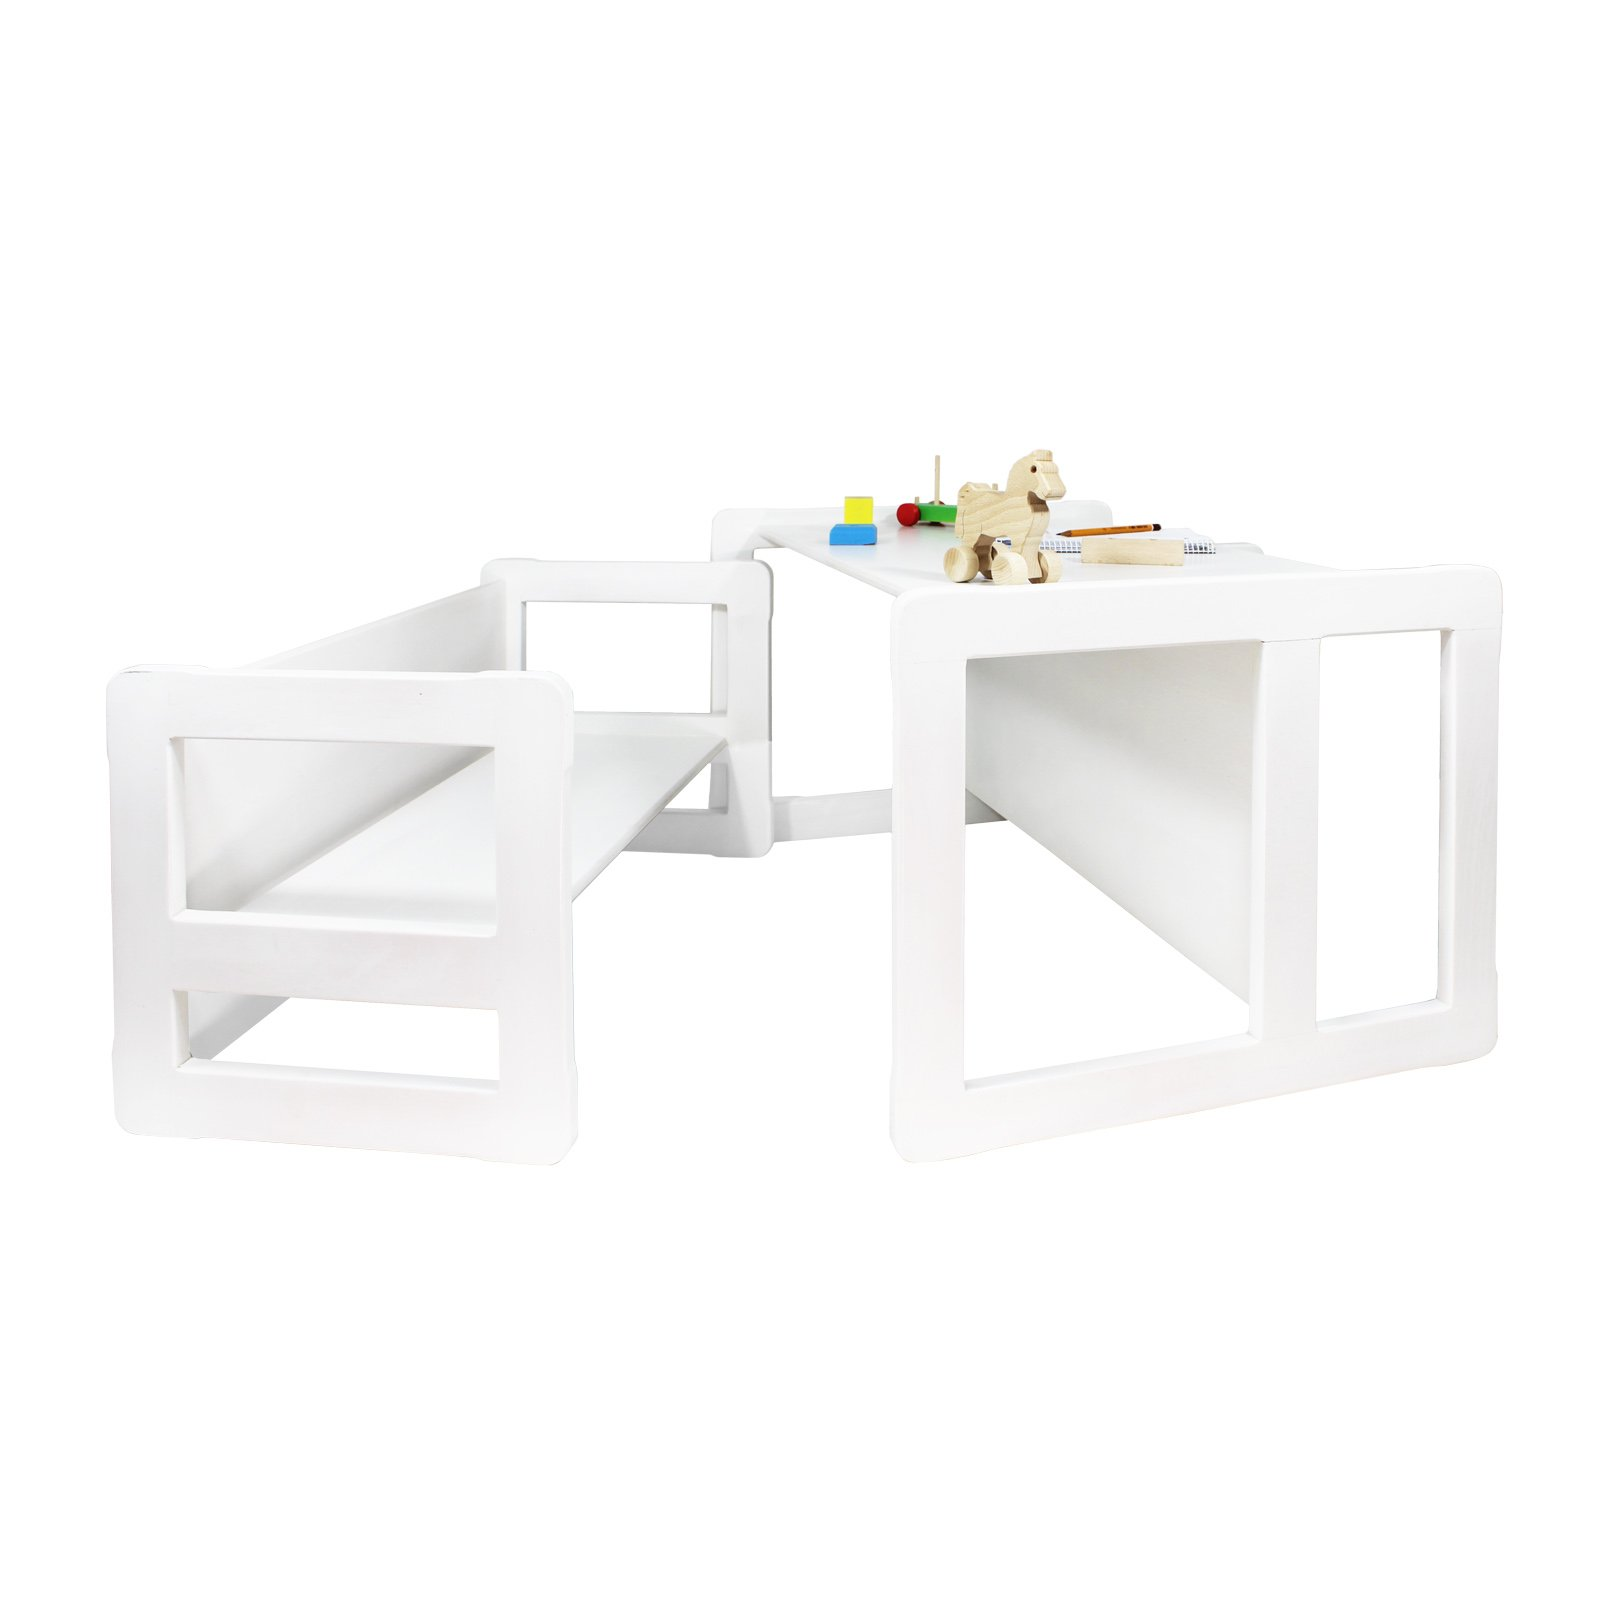 3 in 1 Childrens Multifunctional Furniture Set of 2, One Small Bench or Table and One Large Bench or Table Beech Wood, White Stained by Obique Ltd (Image #2)